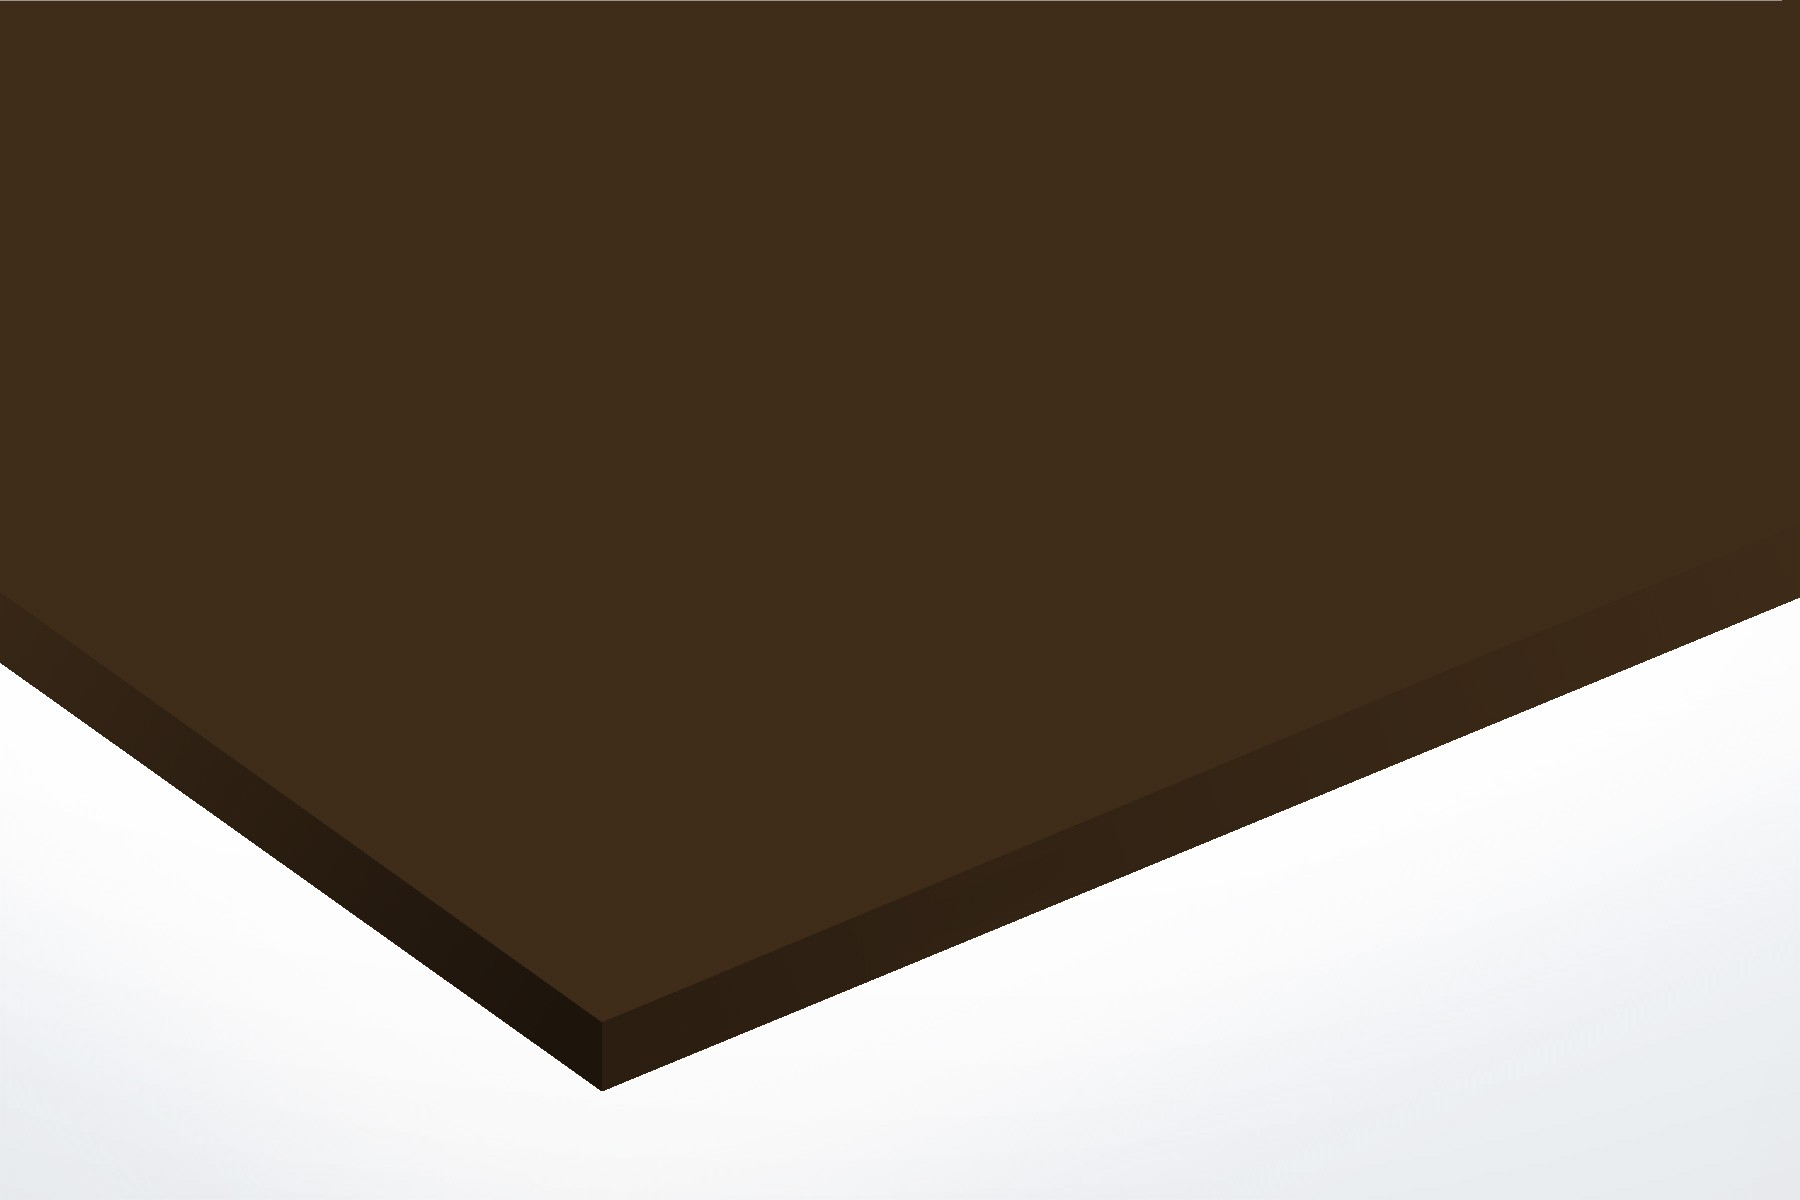 Anodised Aluminium Dark Bronze,  Matte, 1mm x 1000mm x 500mm